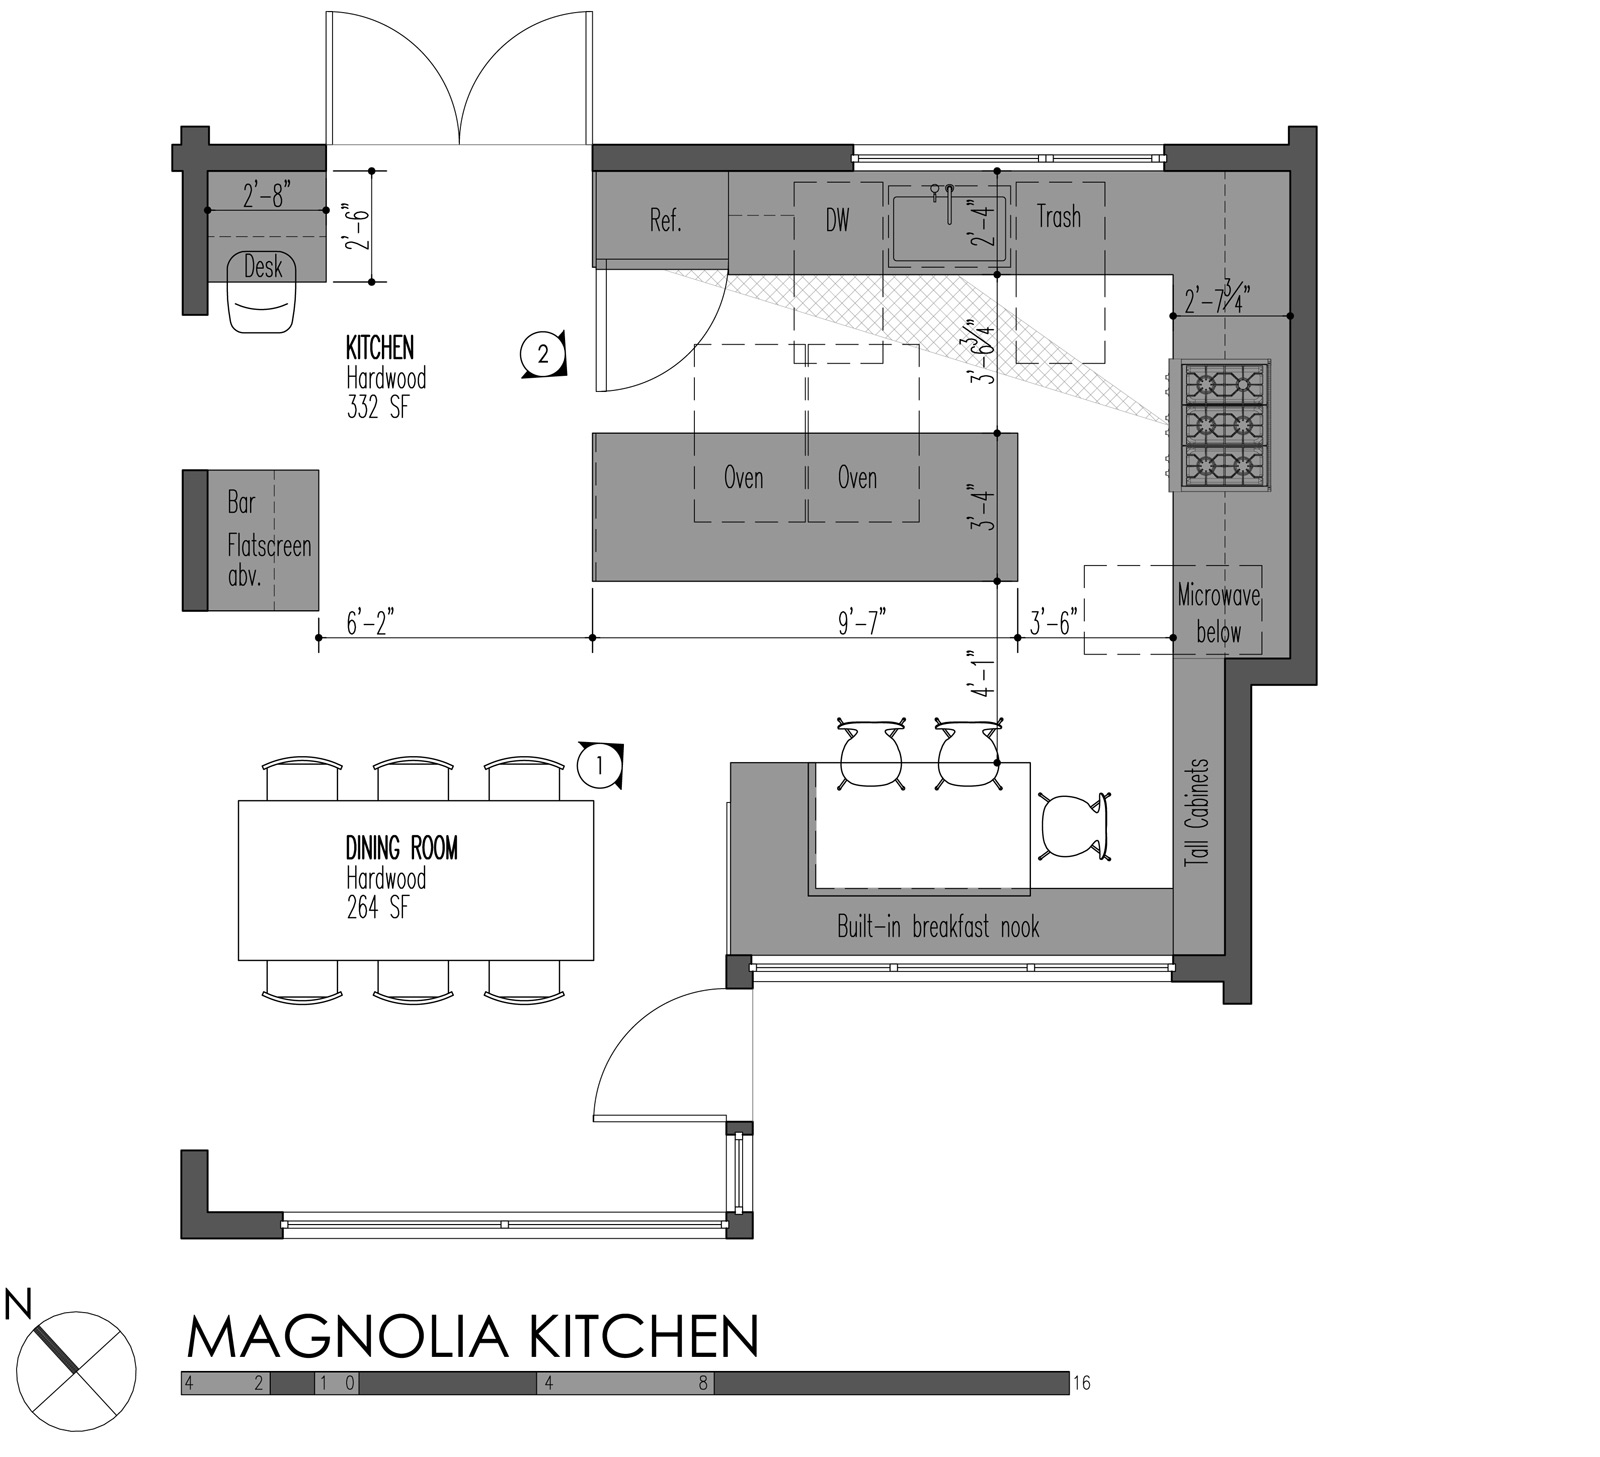 Island kitchen layout drawing - Build Llc Magnolia Kitchen Plan